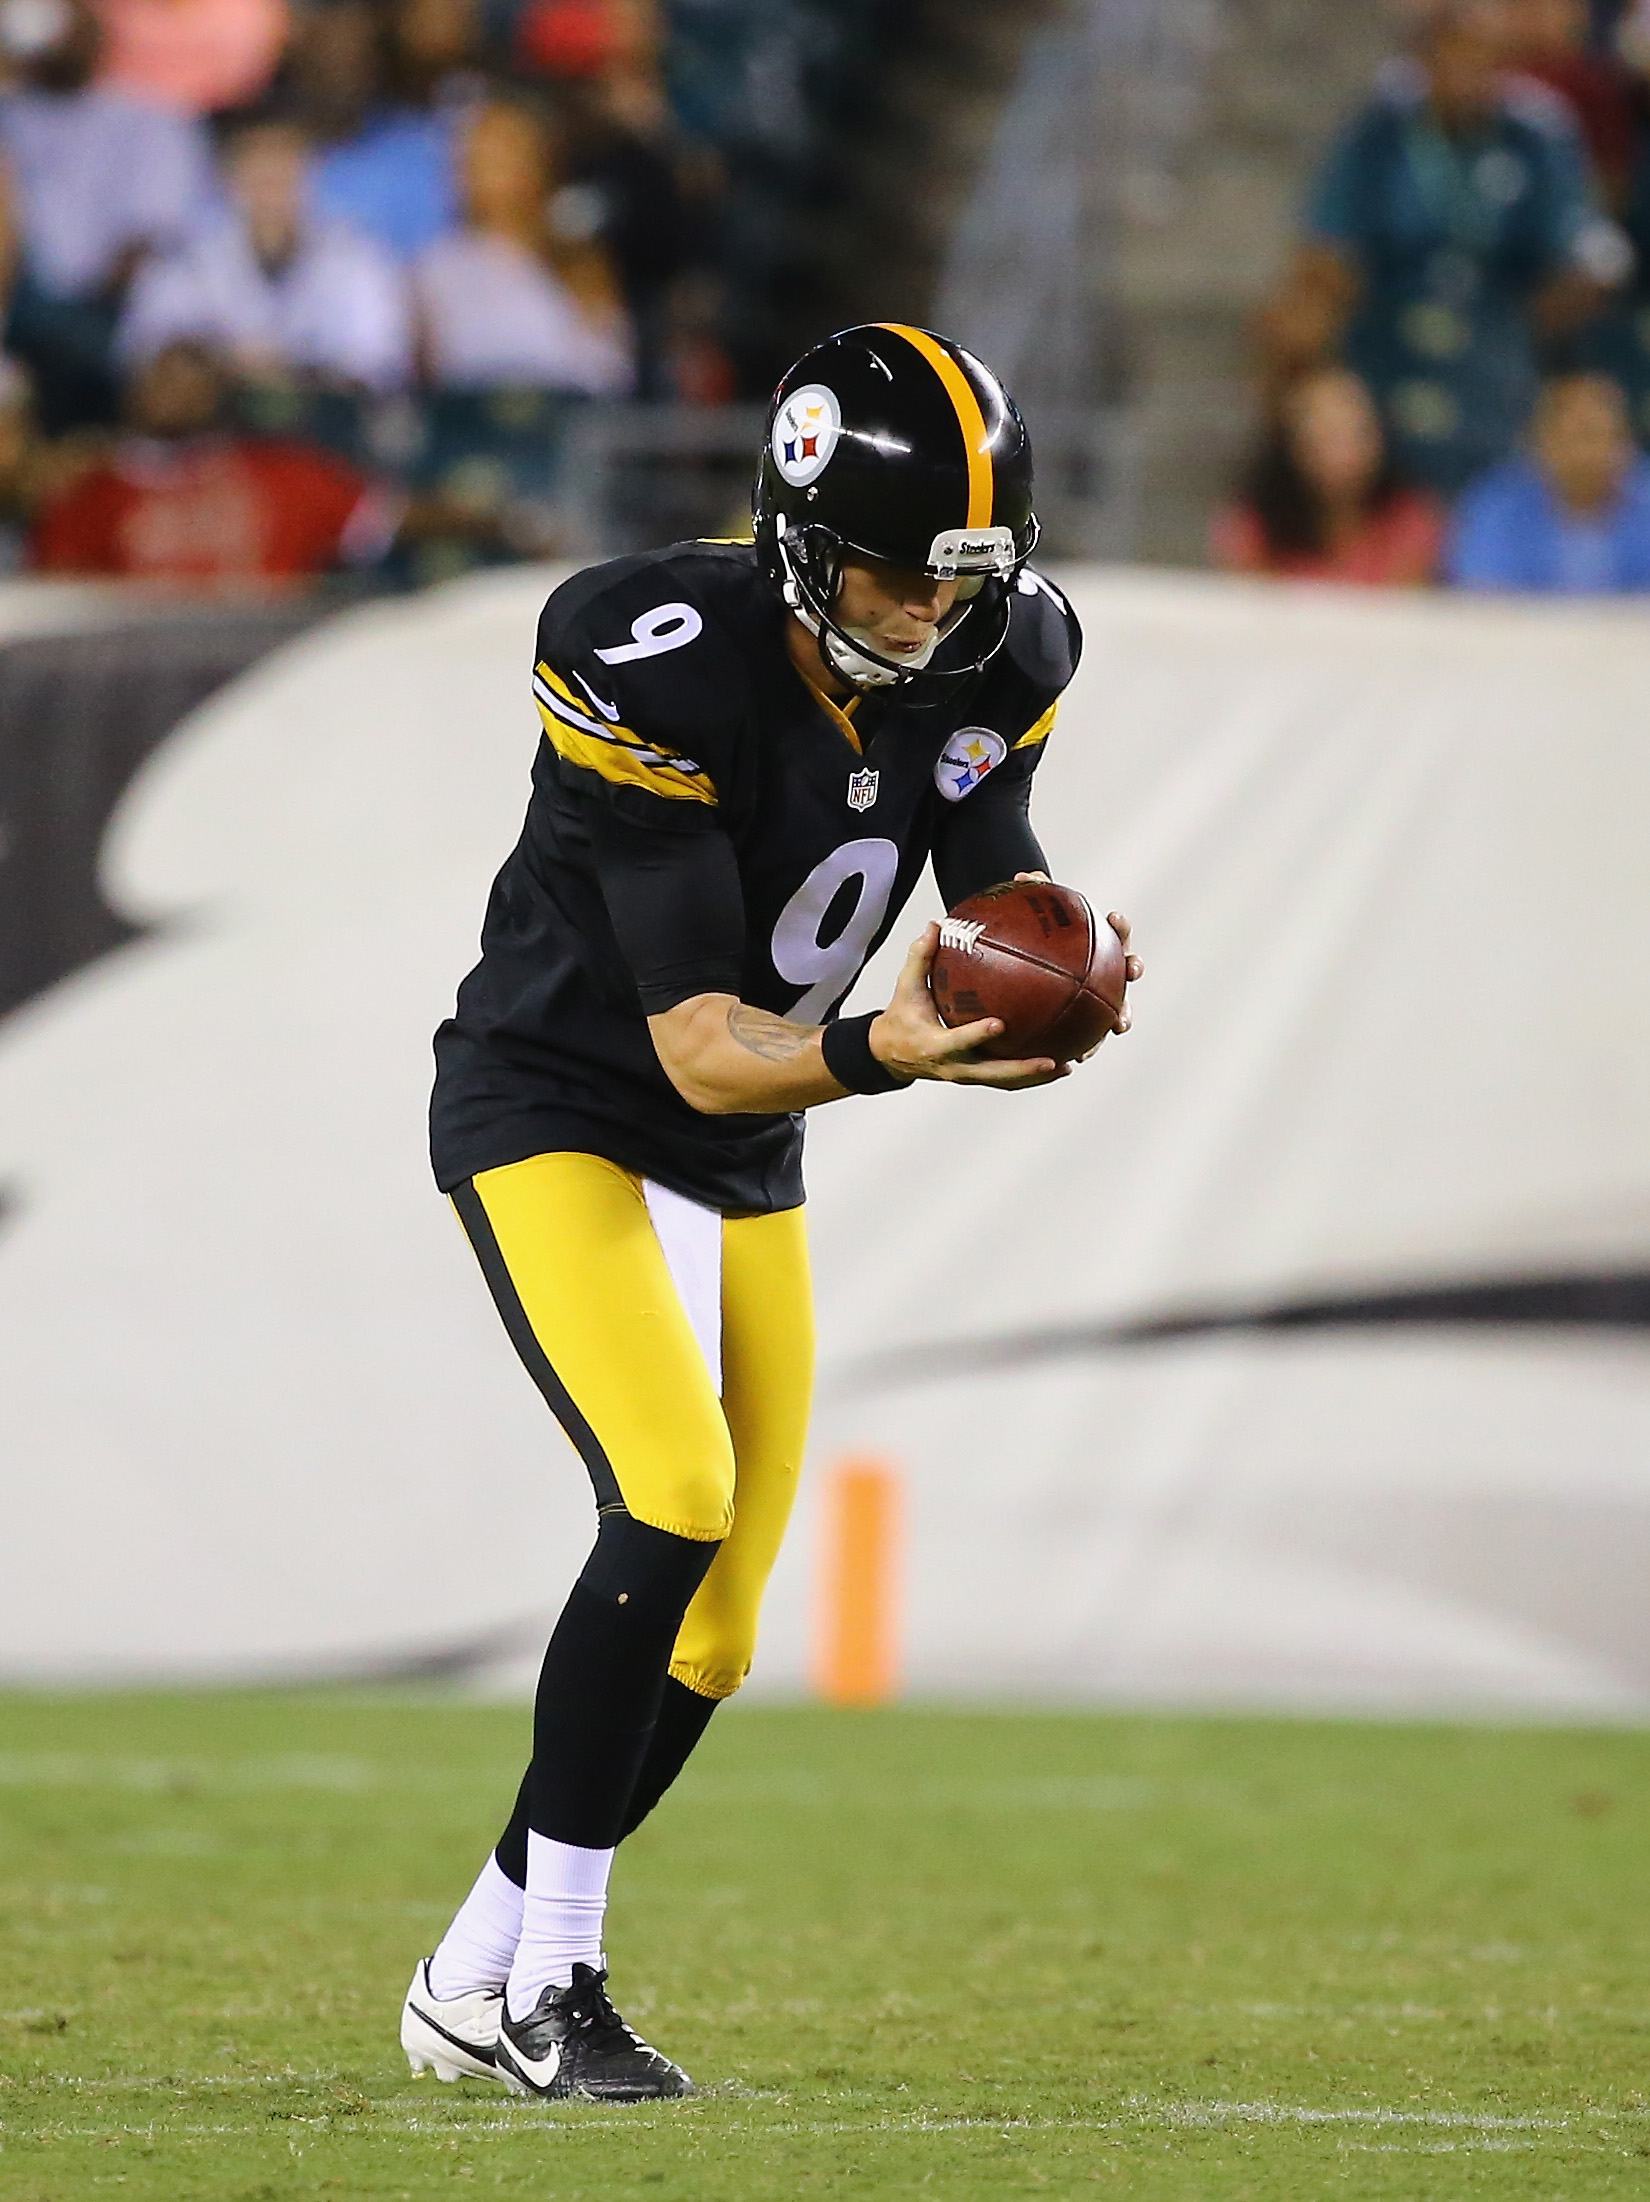 Since there apparently isn't a professional photo of Jordan Berry in existence, here is one of Brad Wing.